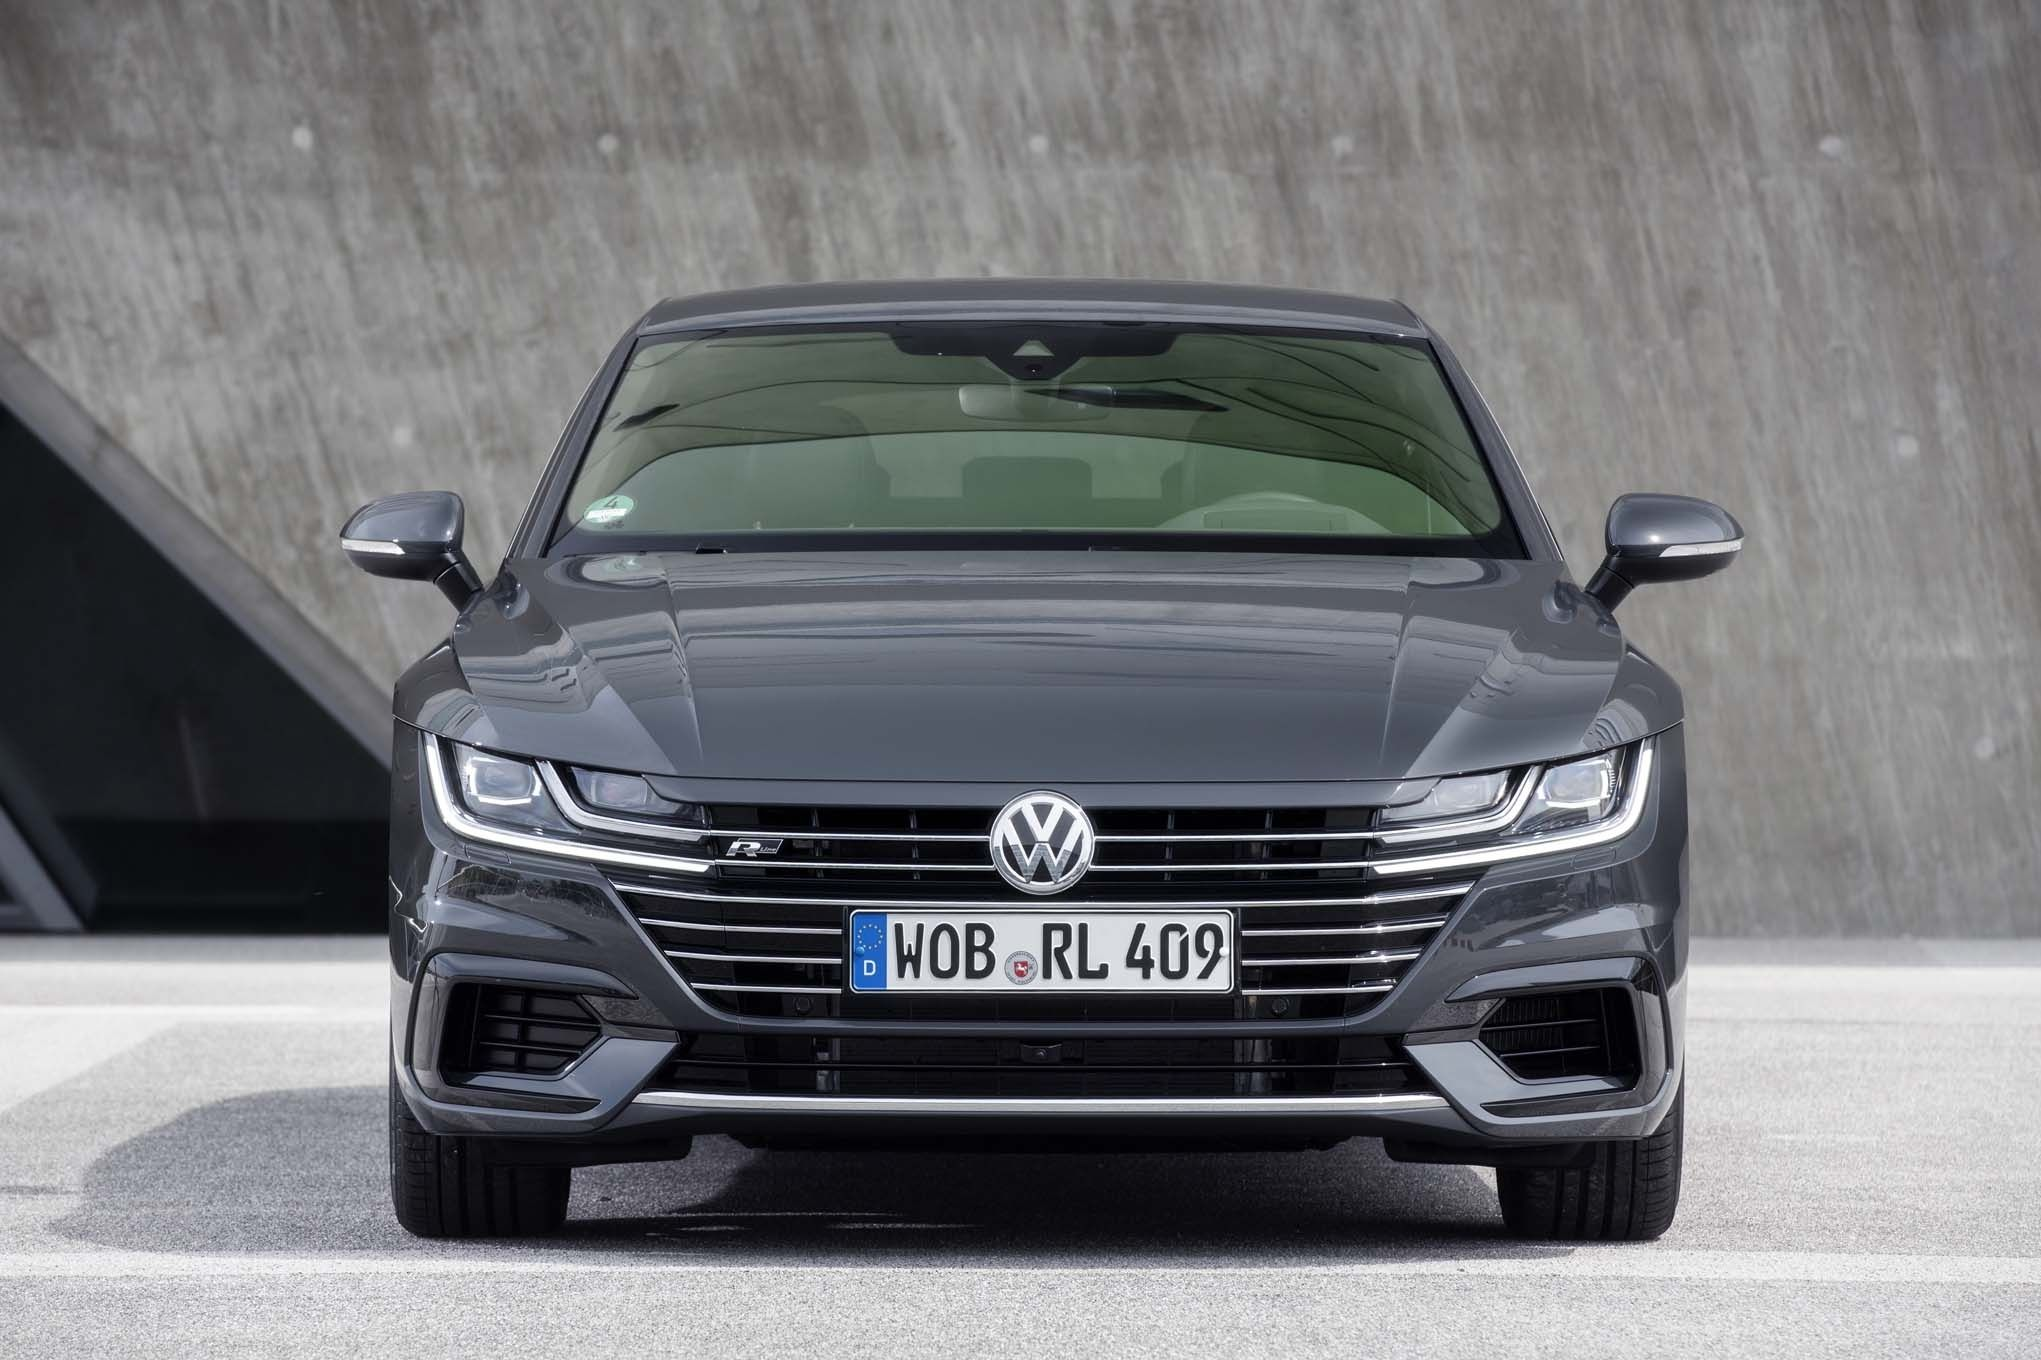 The Volkswagen Passat Is Due For Its Next Full Redesign Sometime In 2019 Although No Official Information Has Bee Volkswagen Passat Cc Volkswagen Cc Passat Cc